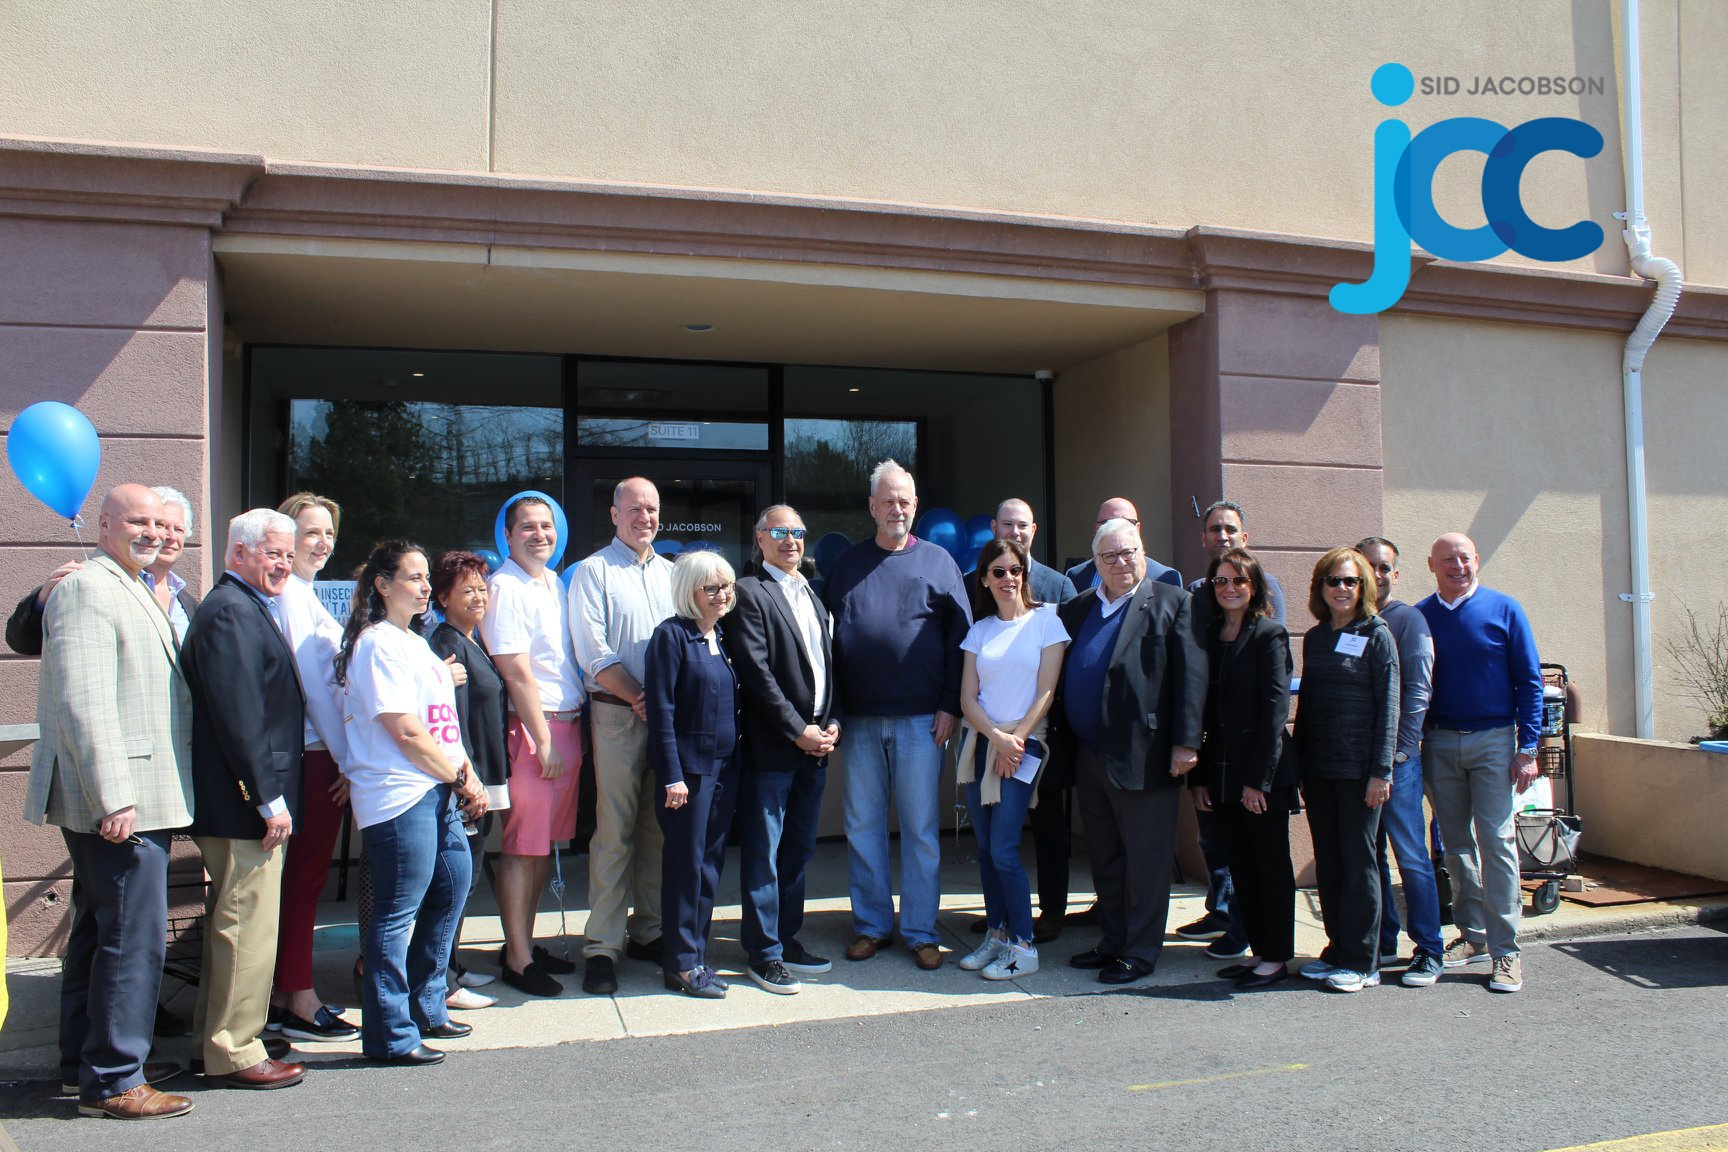 Ribbon Cutting at Sid Jacobson - April 11, 2019Last weekend, David Briggs attended the grand opening of the new @sidjacobsonjcc Annex, designed by Loci in East Hills, NY. The Annex's 11,000 sf includes office spaces, conference and training rooms, and the JCC's new community food bank. Loci is proud to work with the JCC and their outstanding community service work.